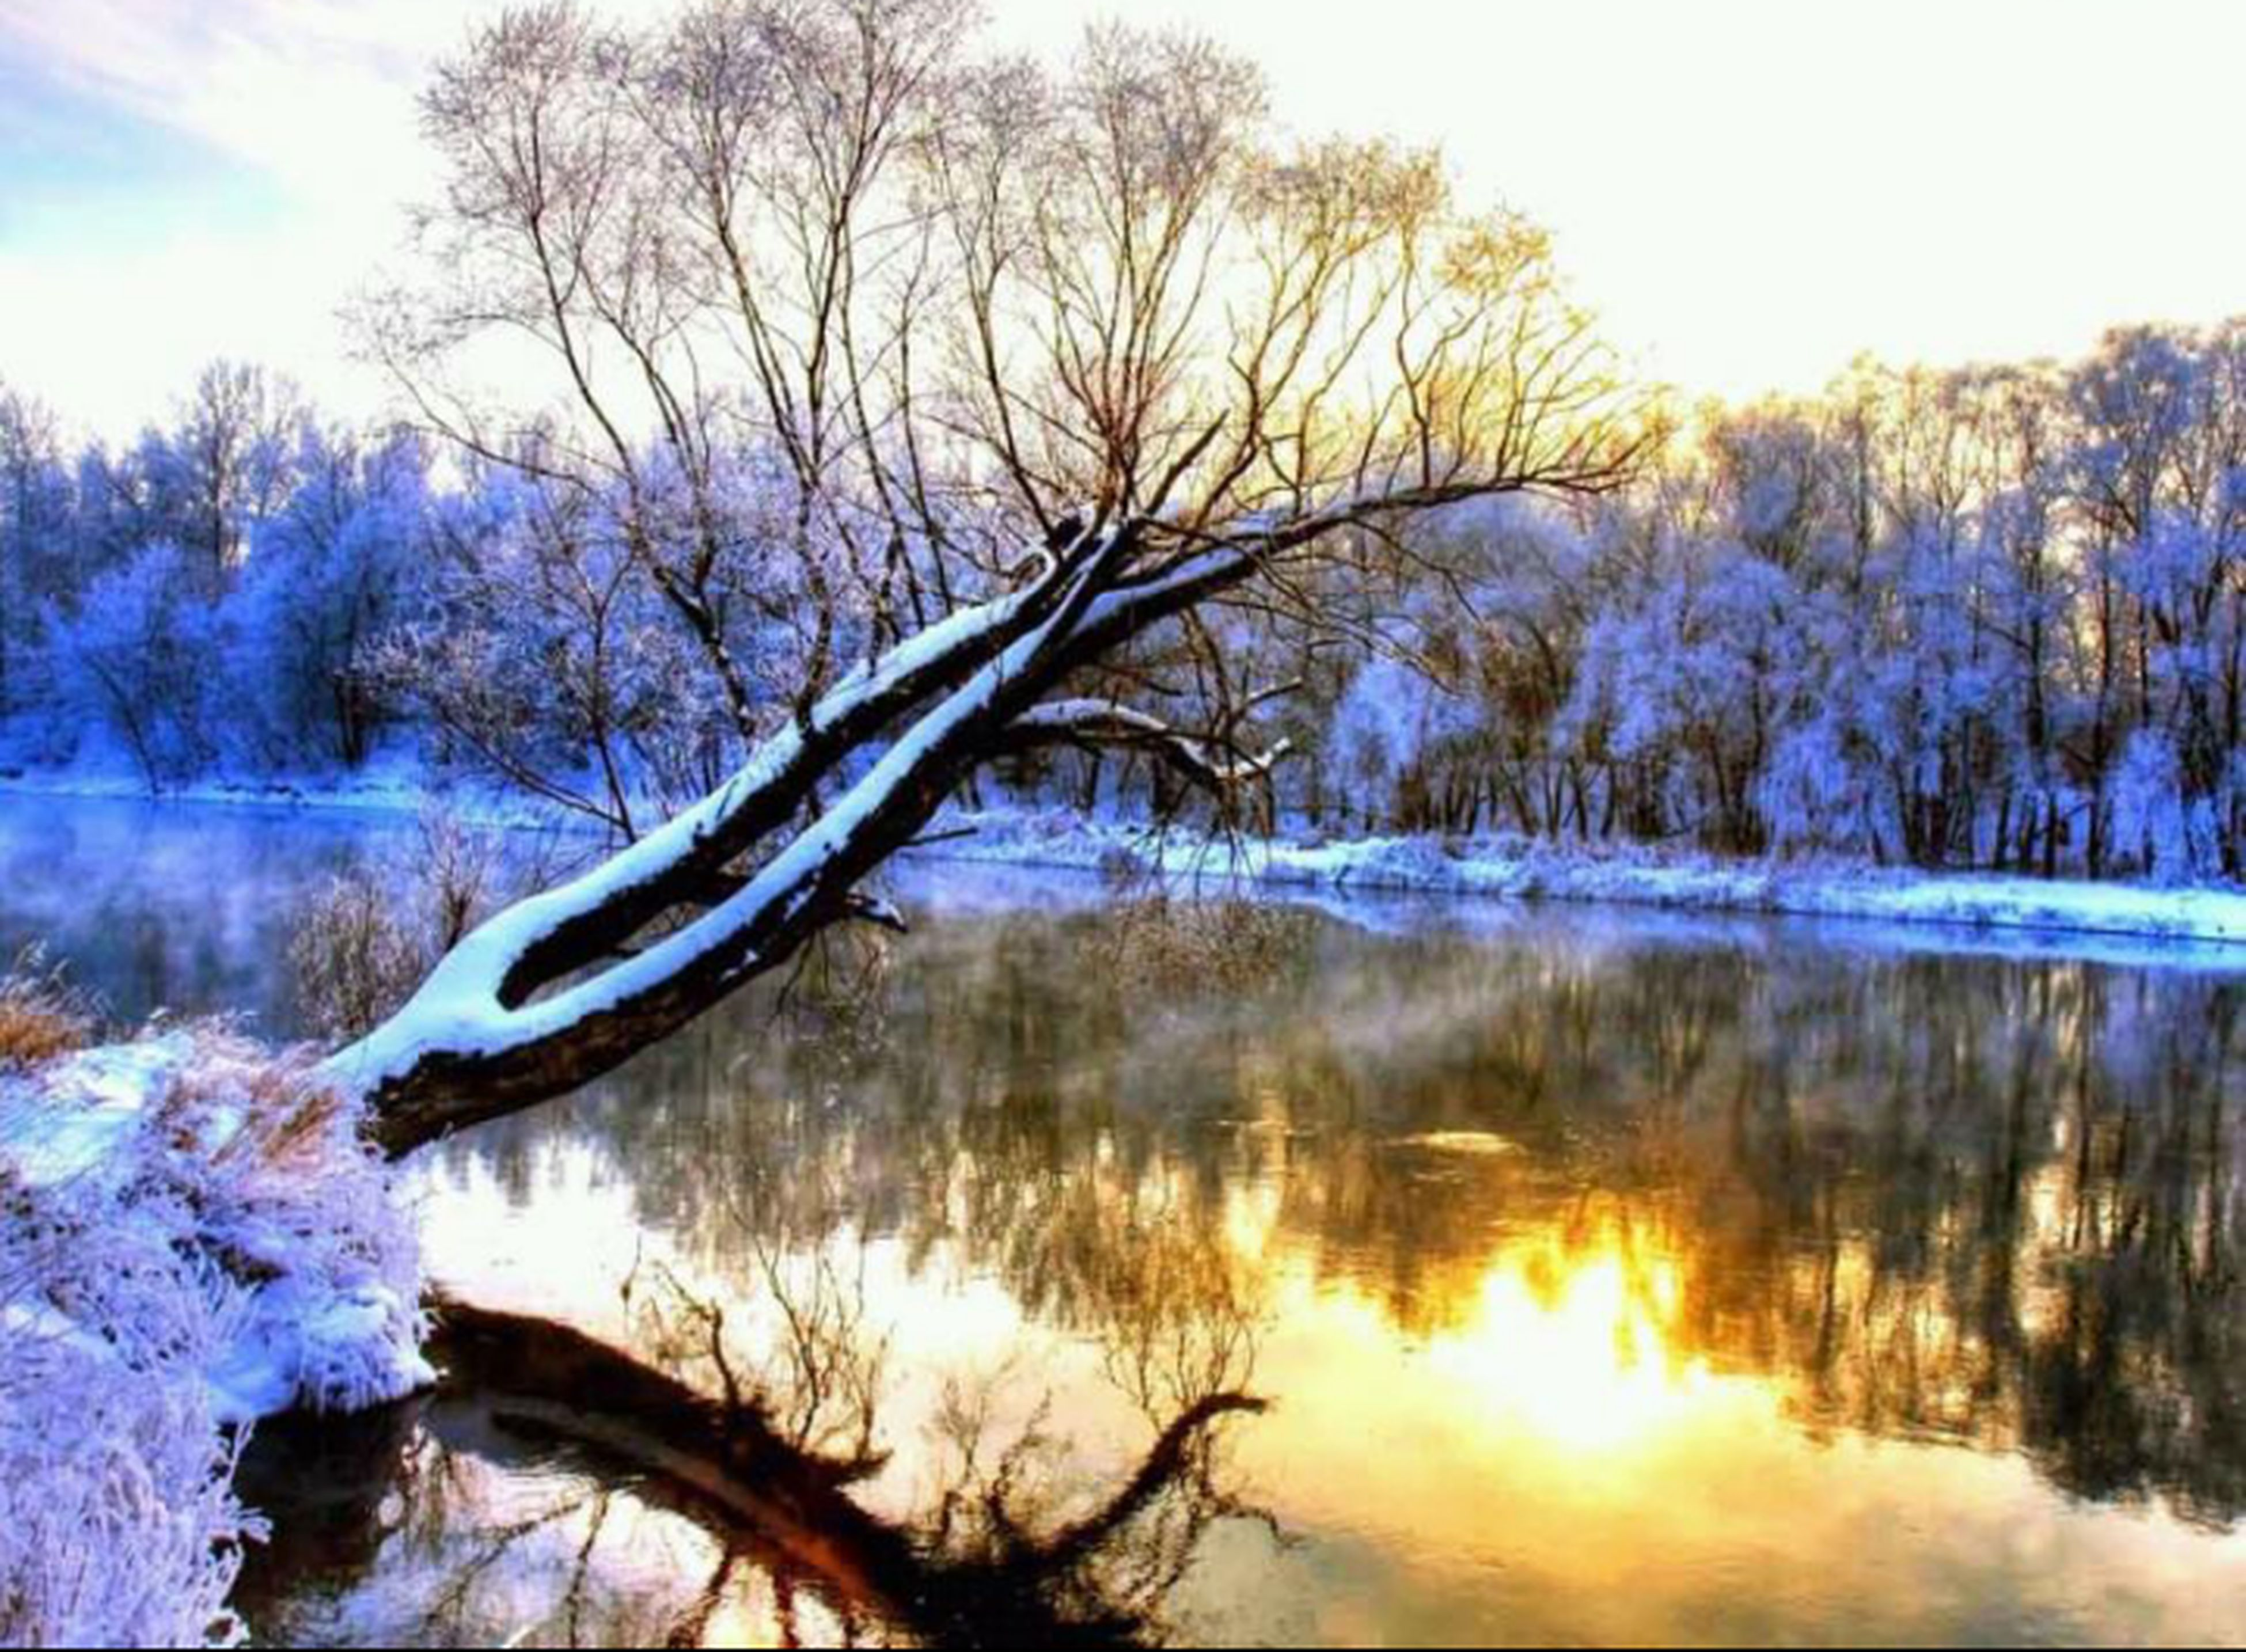 tree, lake, water, tranquility, tranquil scene, reflection, beauty in nature, scenics, nature, bare tree, sky, branch, waterfront, idyllic, non-urban scene, forest, day, outdoors, blue, no people